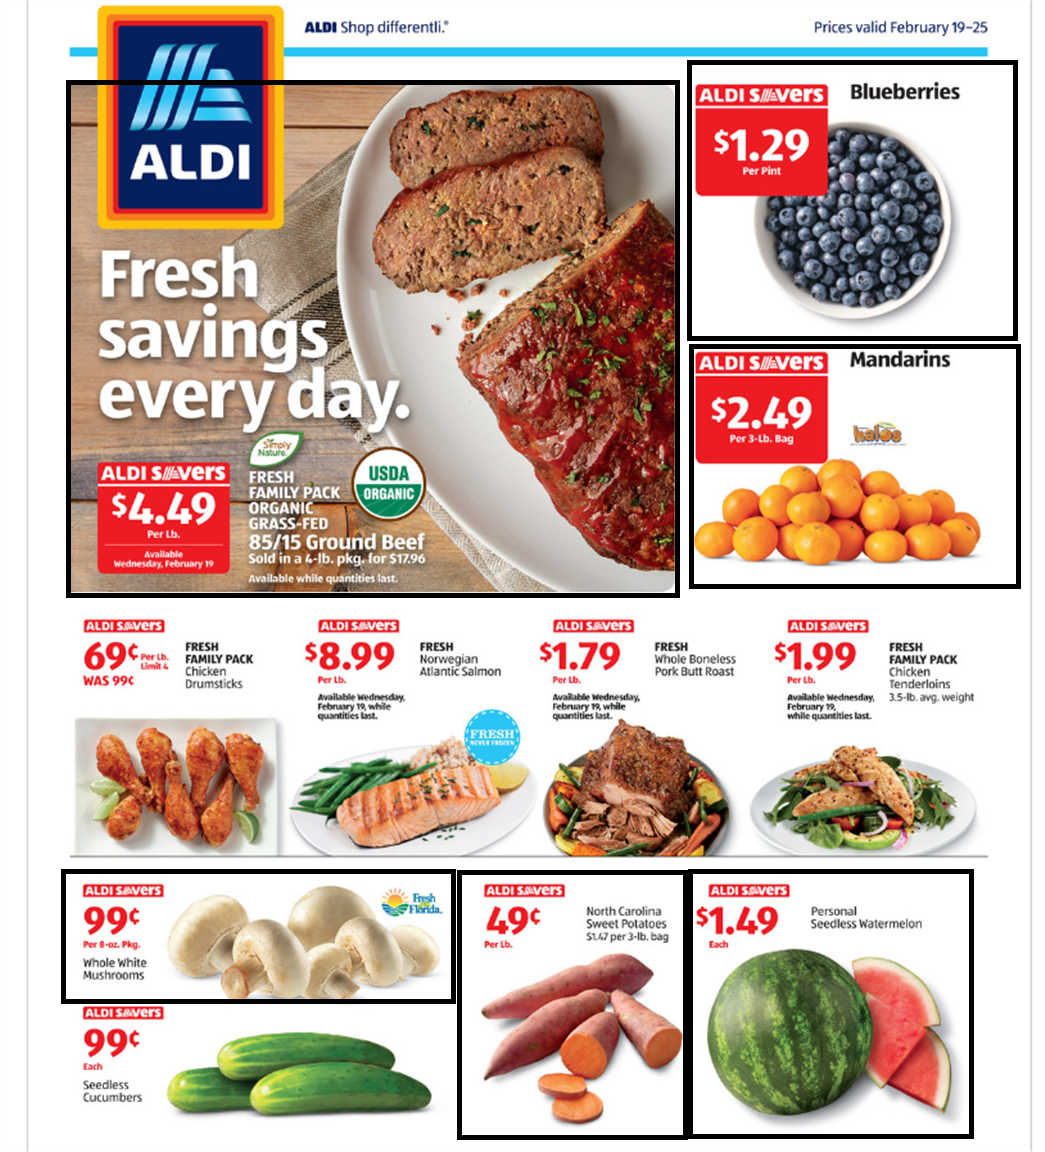 Best Fruit & Vegetable Deals at Aldi for February 19-25